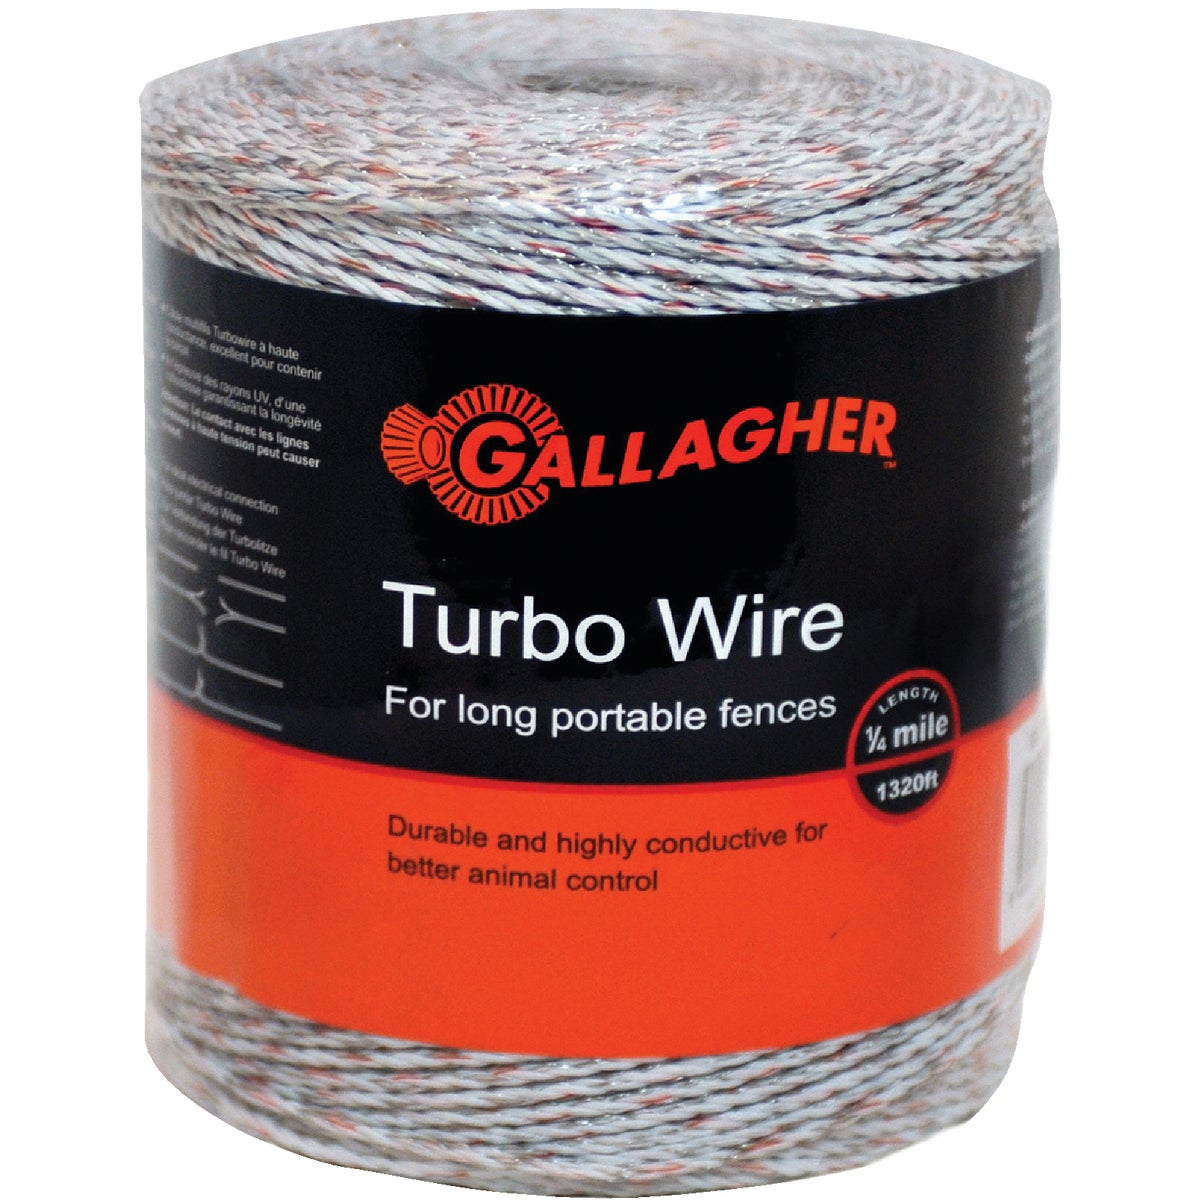 1312' TURBO WIRE - G620564 by Gallagher